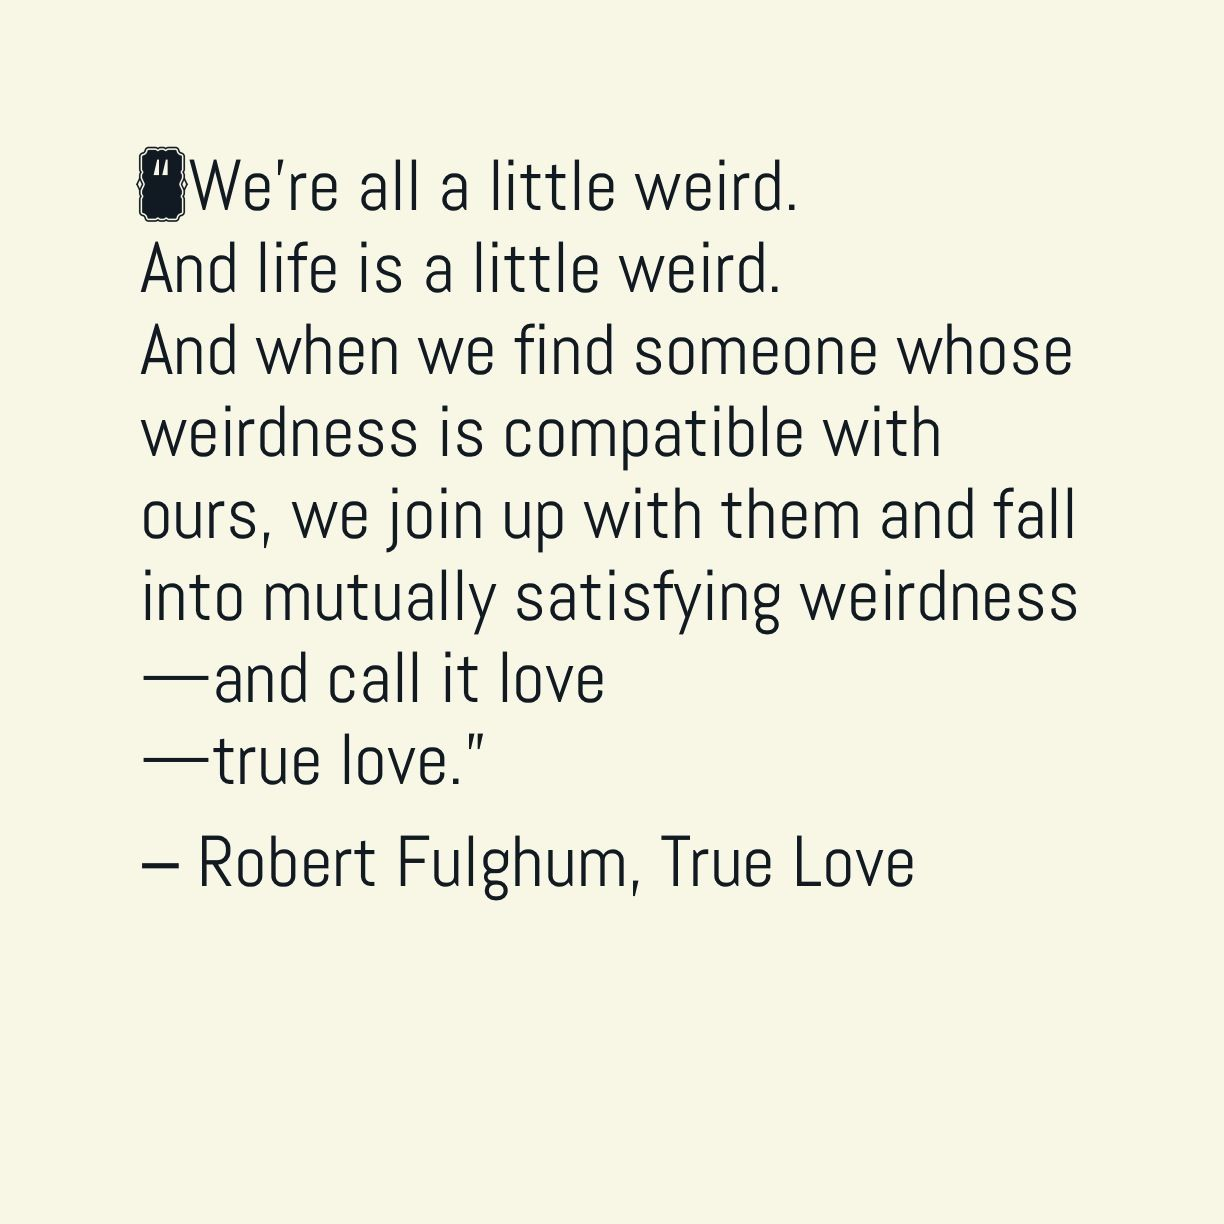 Truelove Love Beautiful Quote On Love And Weirdness By